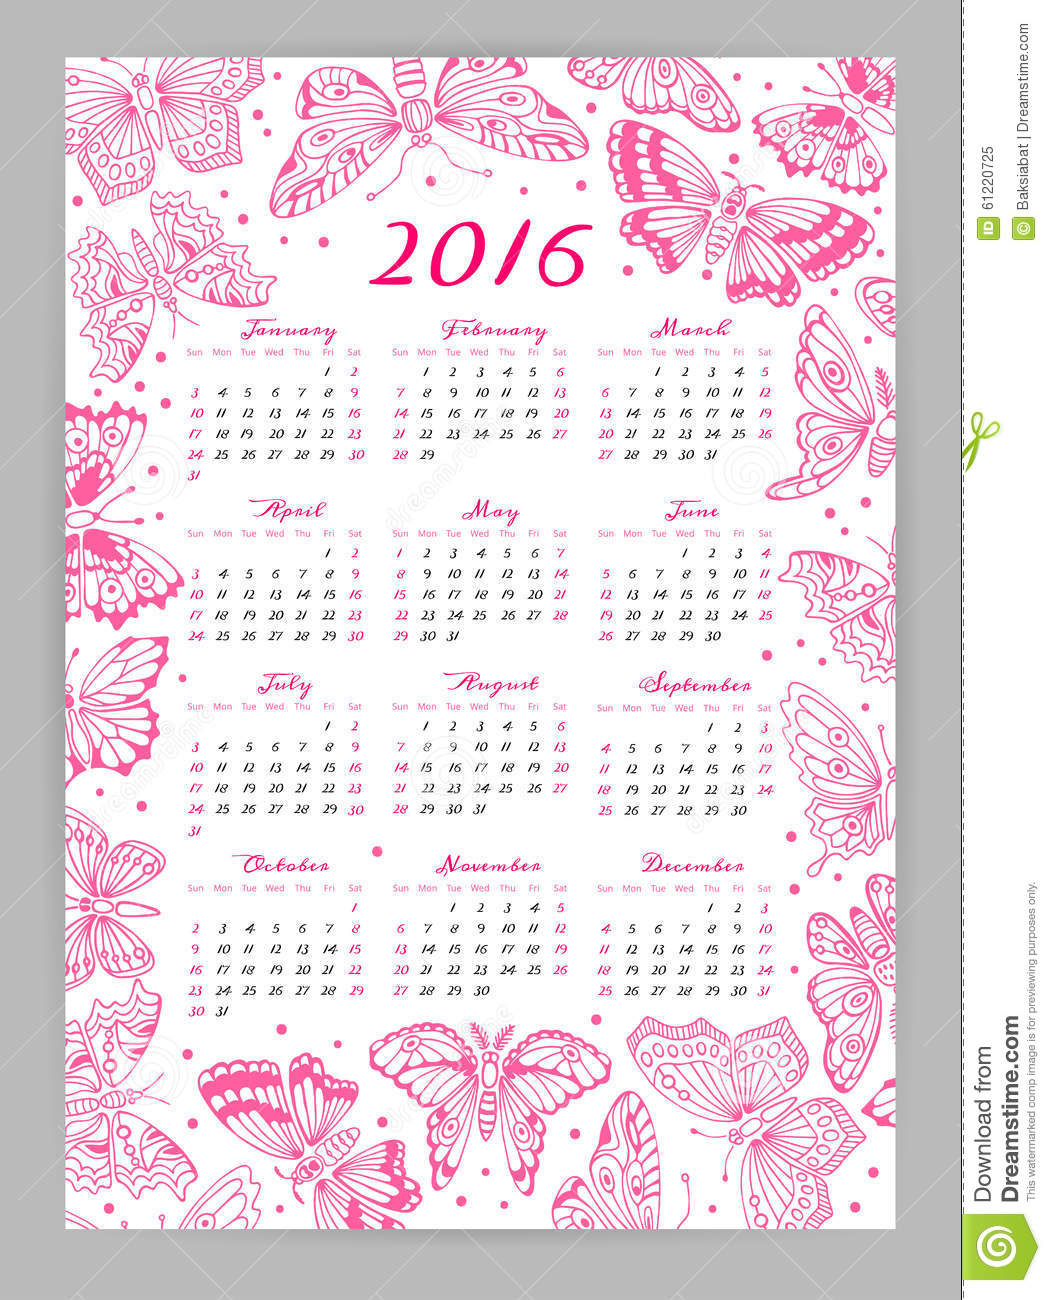 Calendar 2016 Year With Decorative Butterflies Stock Vector - Image ...